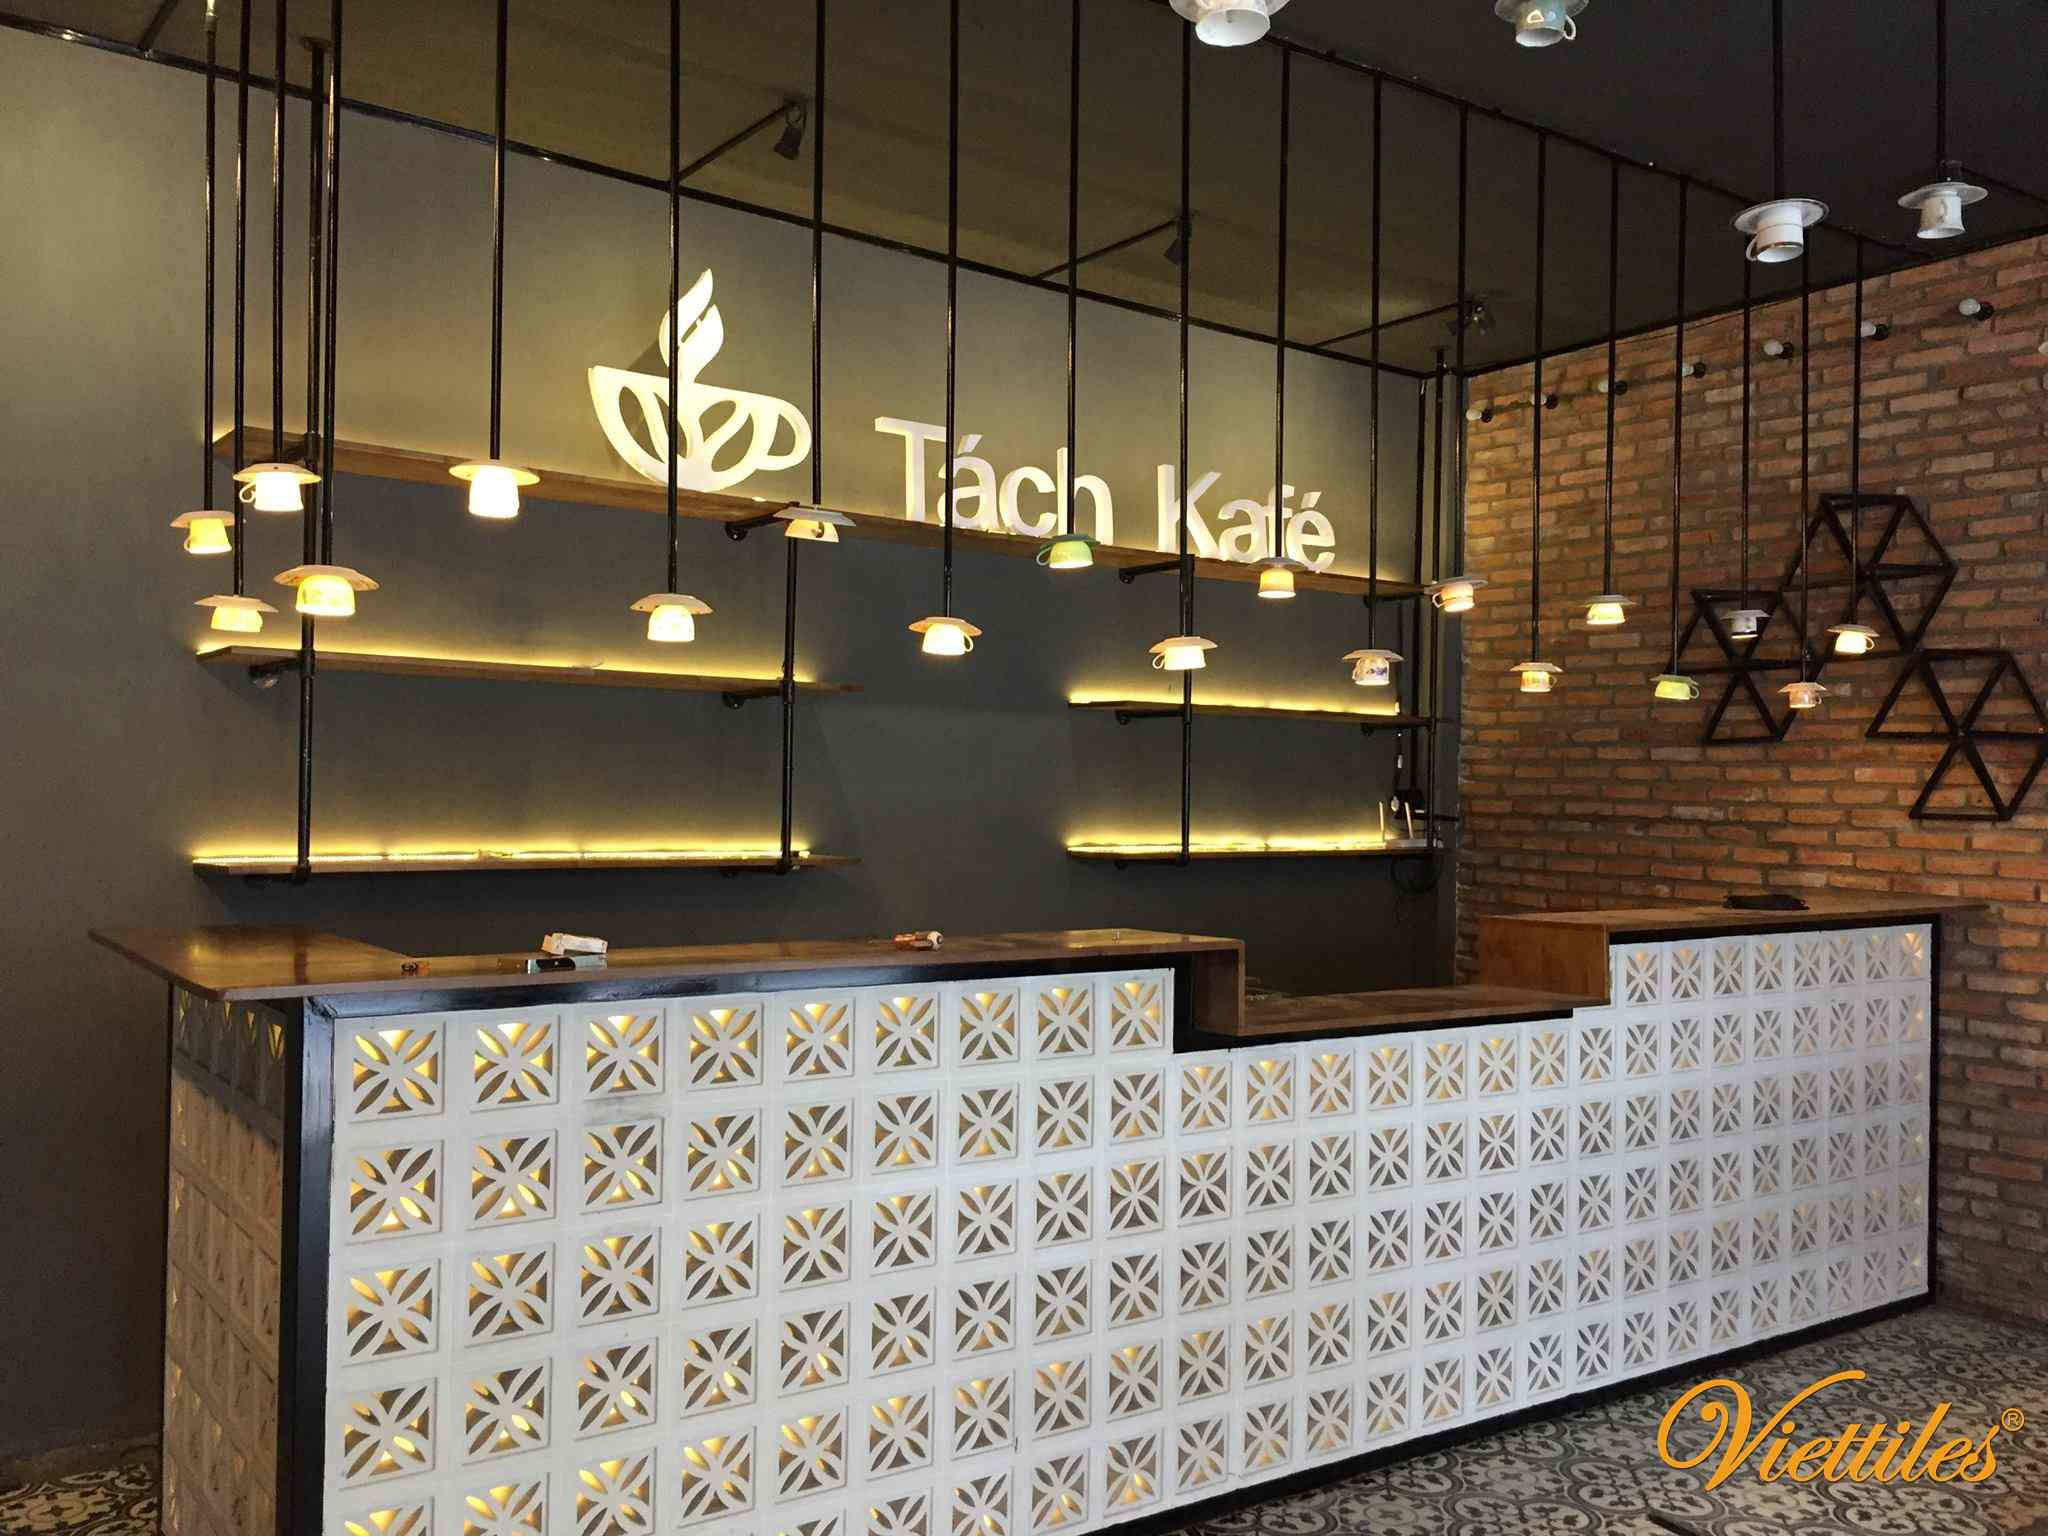 Tach Kafe - the coffee in Can Tho use Viettiles product